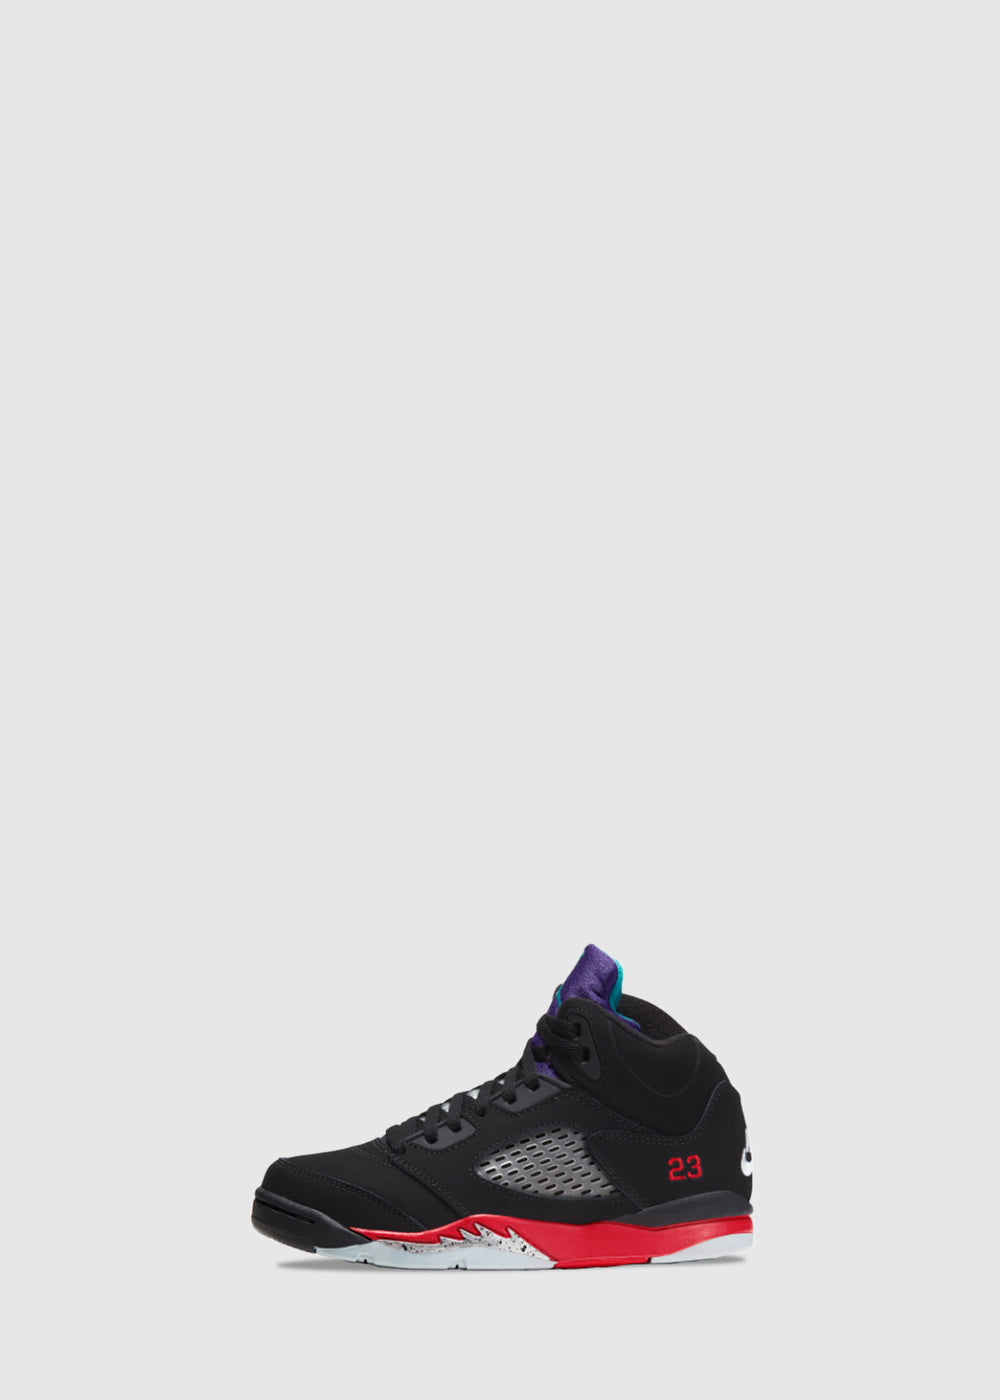 jordan-air-jordan-5-top-3-black-1-1